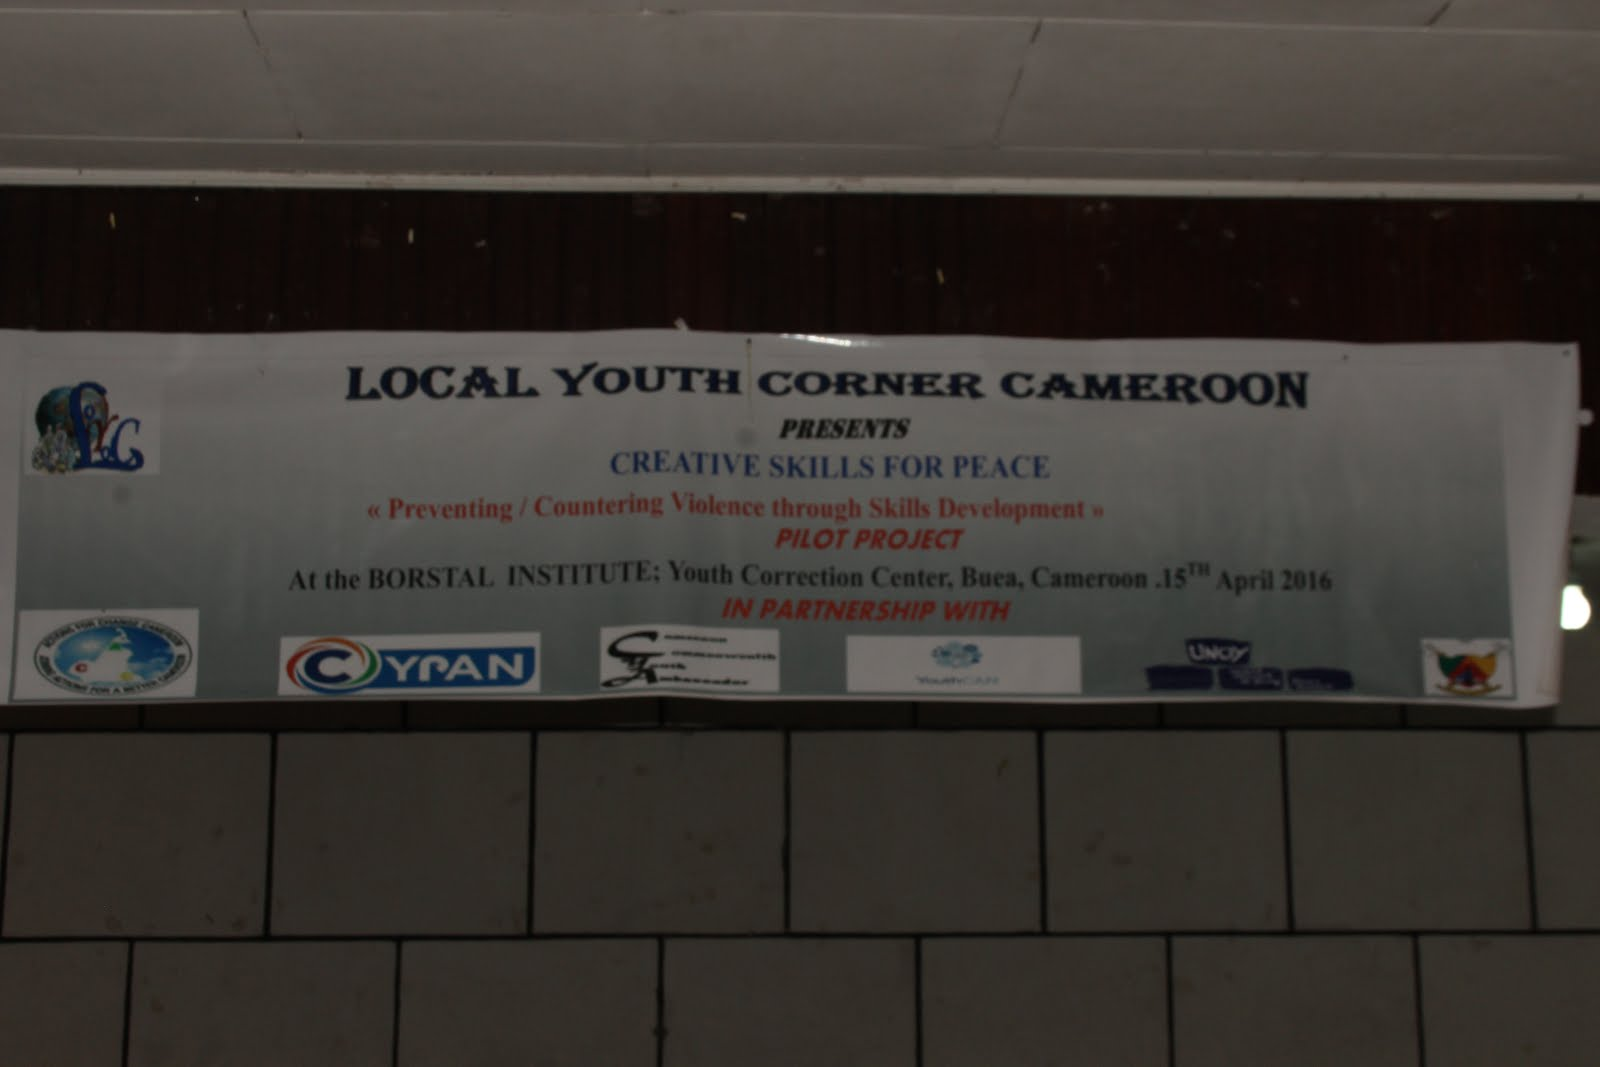 LOCAL YOUTH CORNER CAMEROON